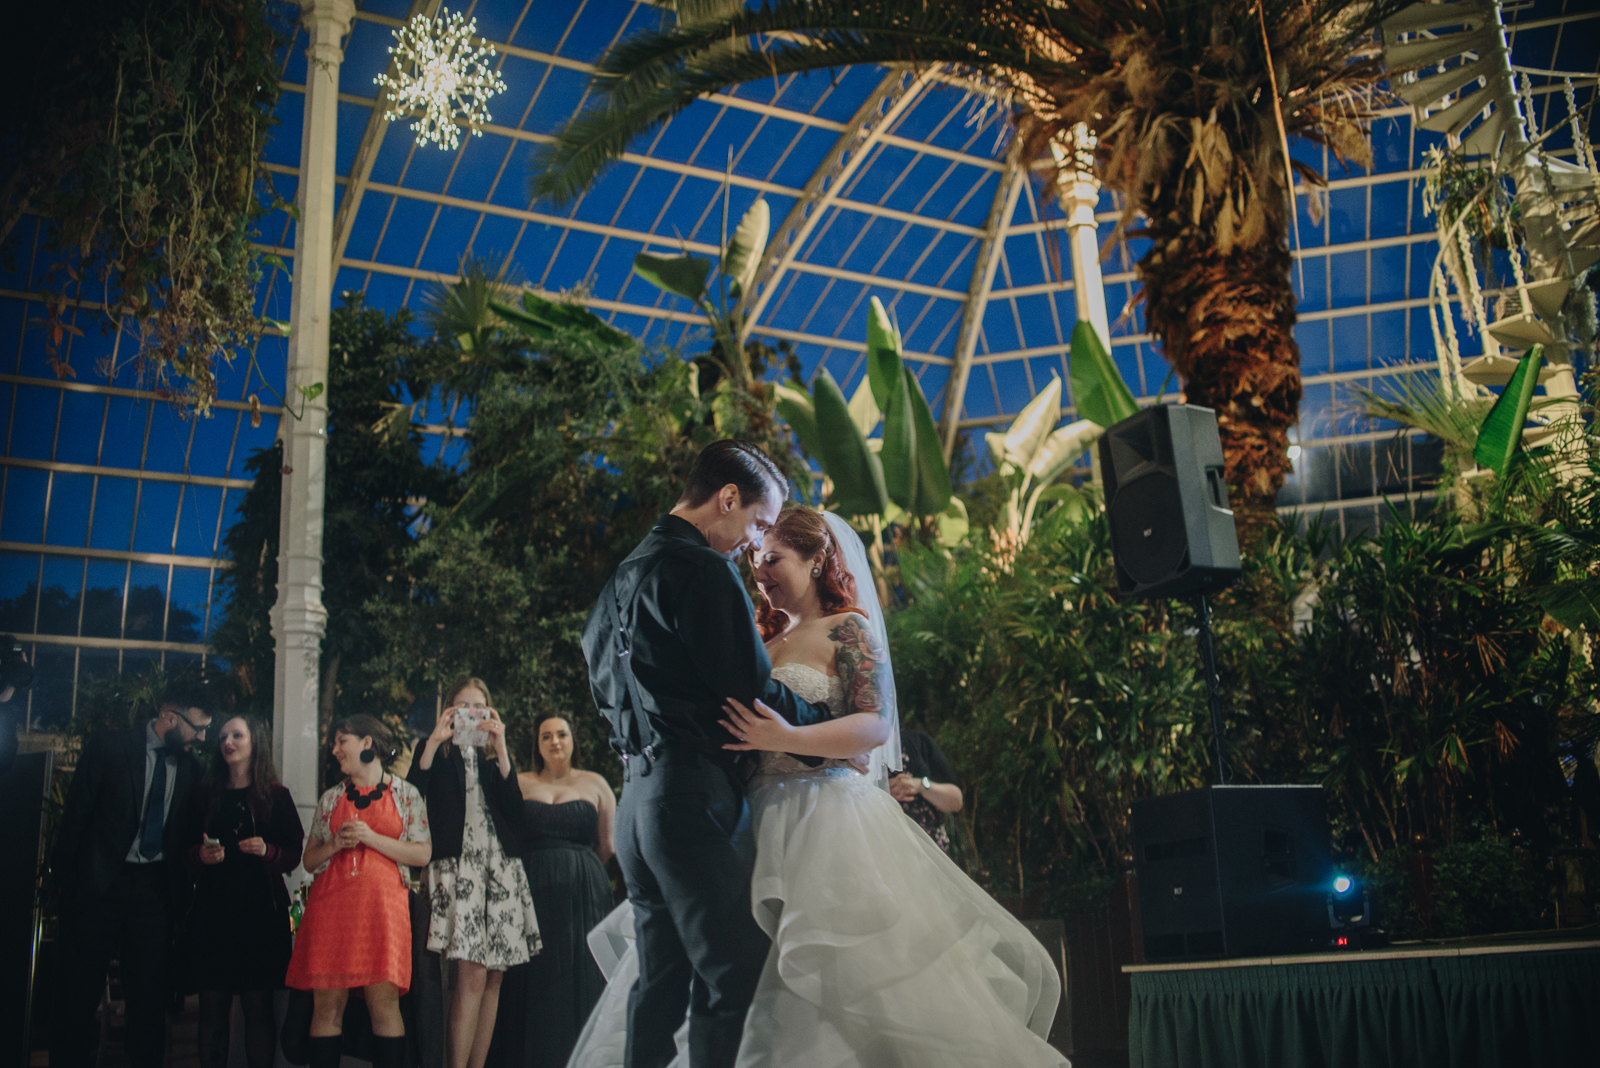 Twin Peaks Inspired Sefton Park Palm House Wedding Photography | The Pin-Up Bride